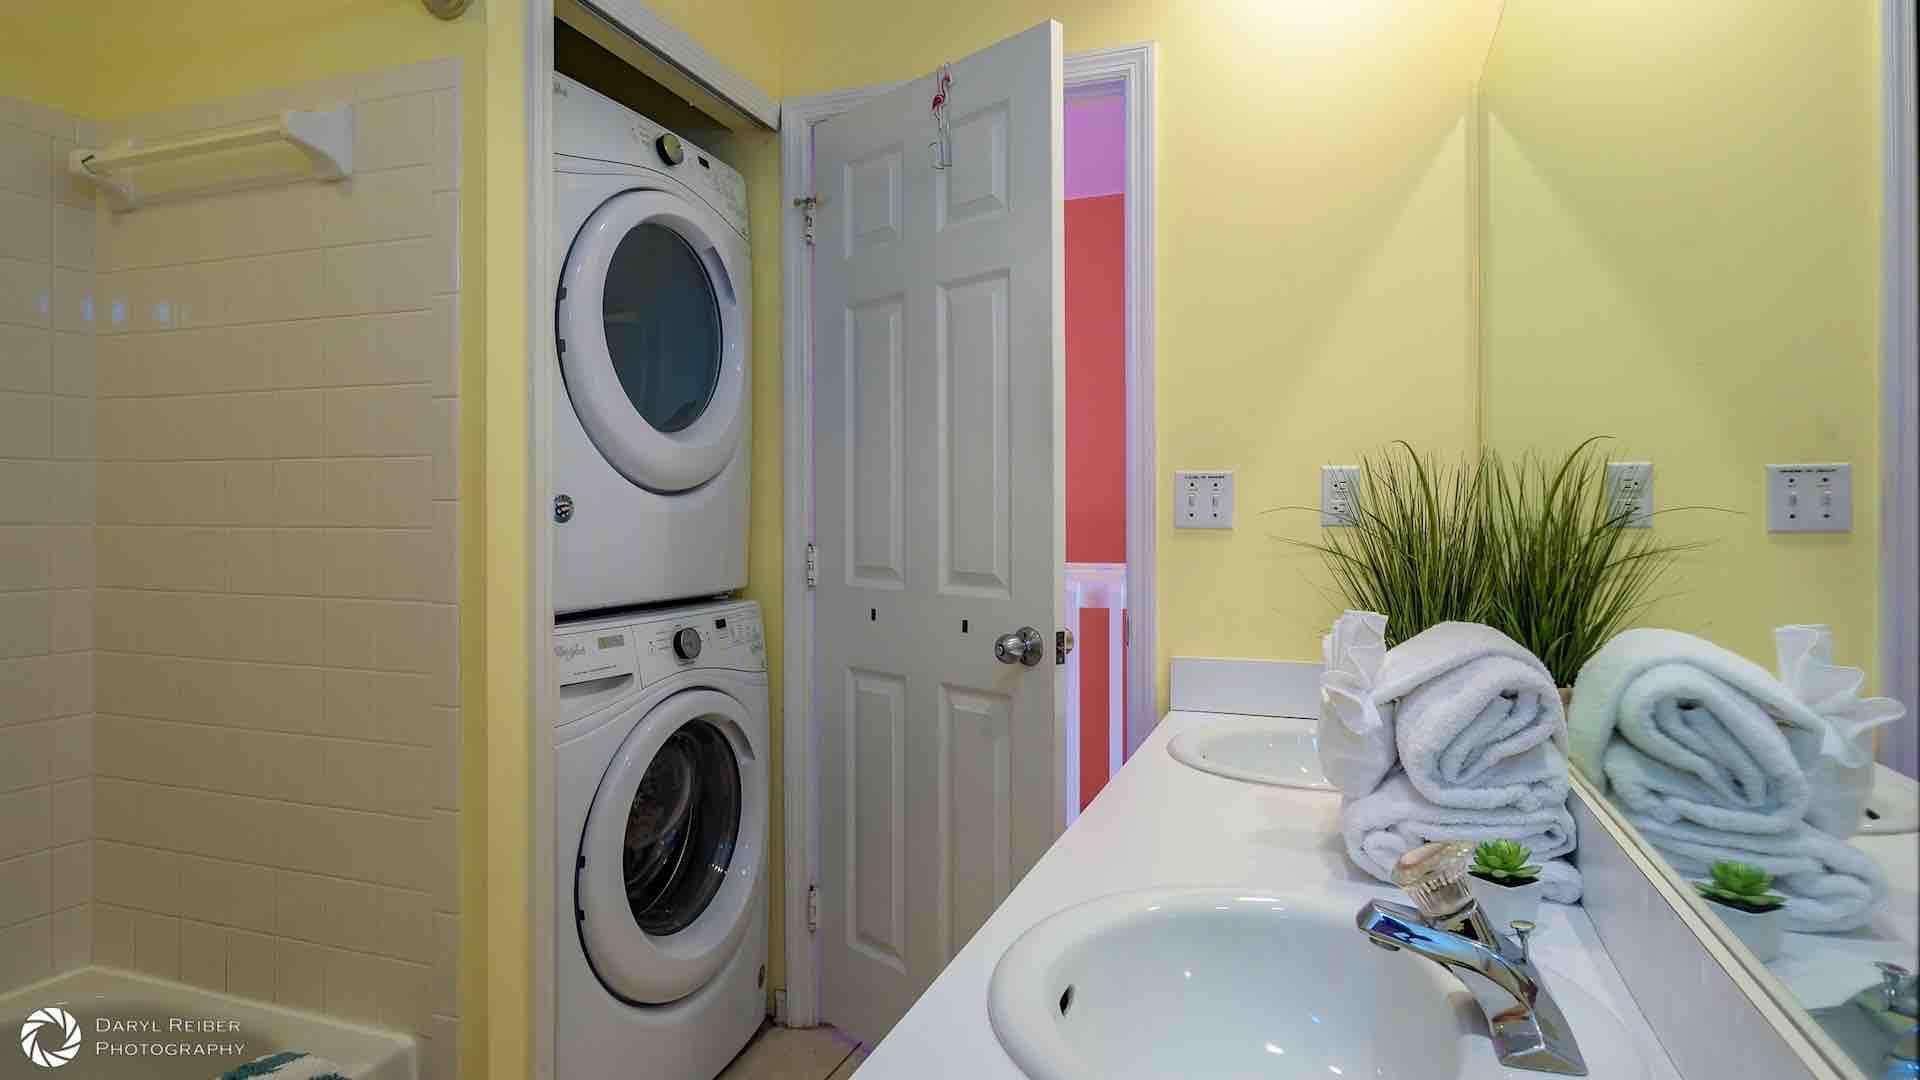 The washer and dryer are also located in the full bathroom...